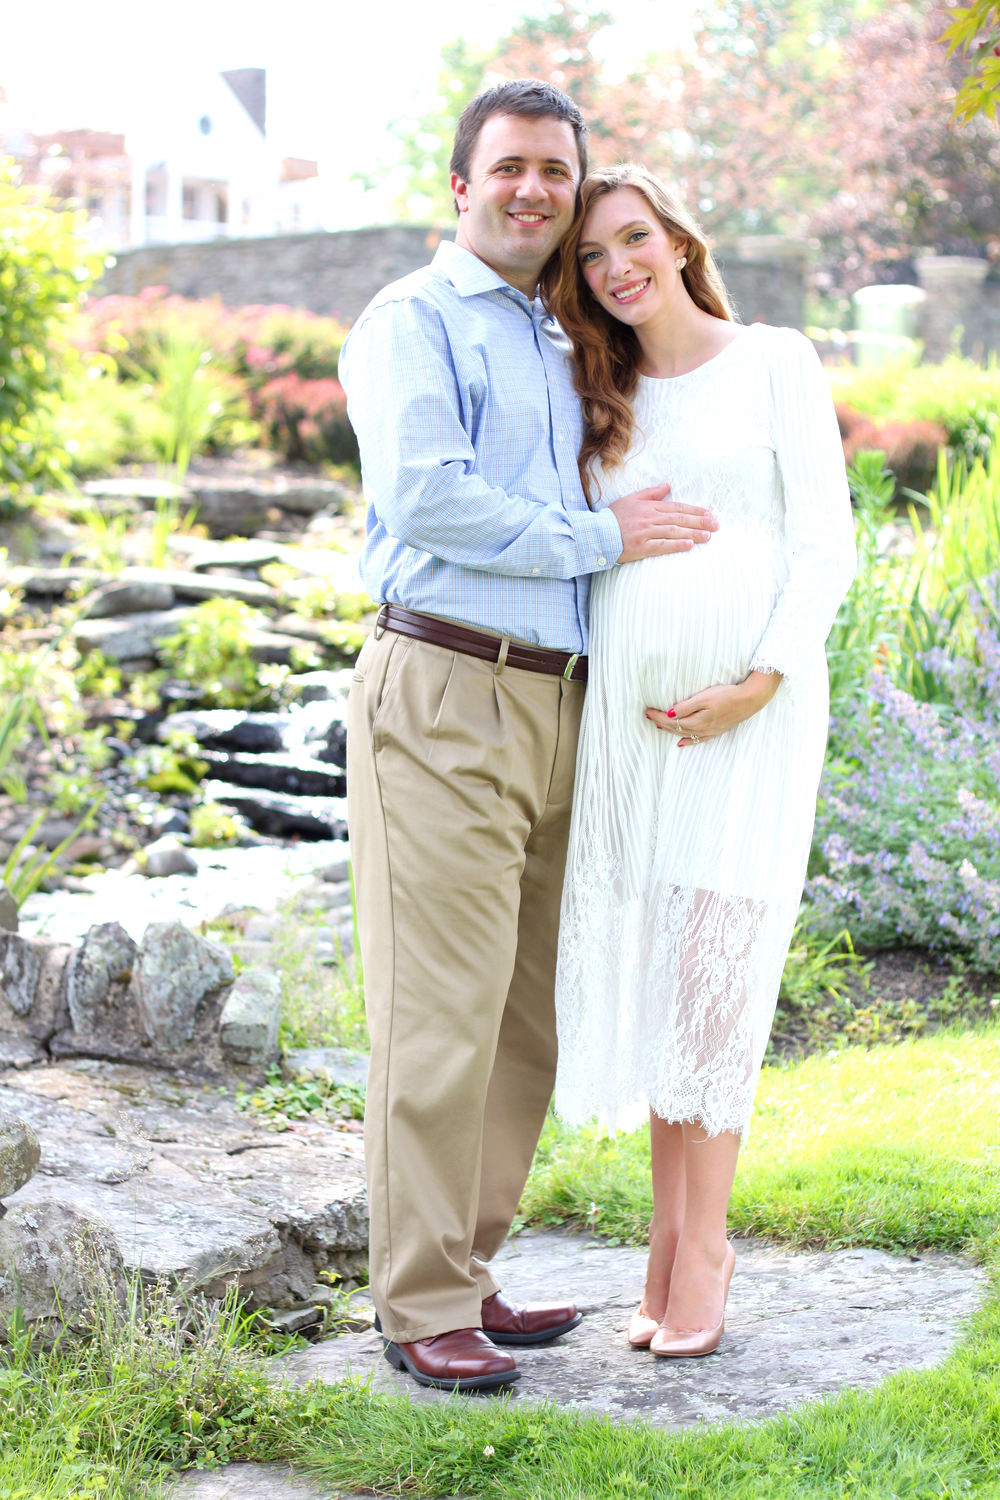 Maternity Photos- Enchanting Elegance